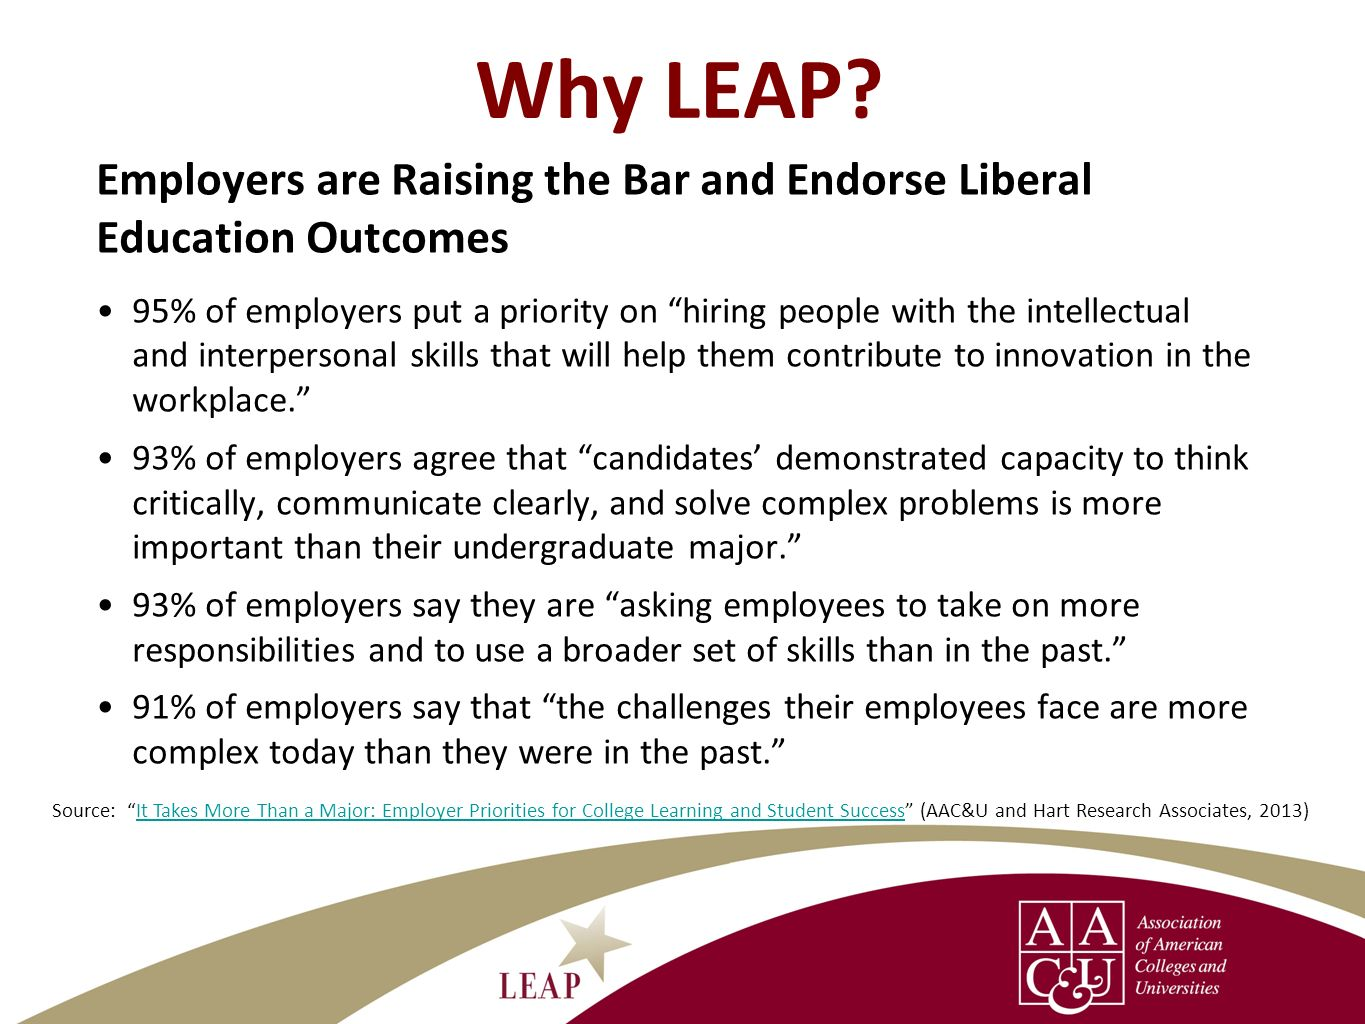 Why LEAP Employers are Raising the Bar and Endorse Liberal Education Outcomes.